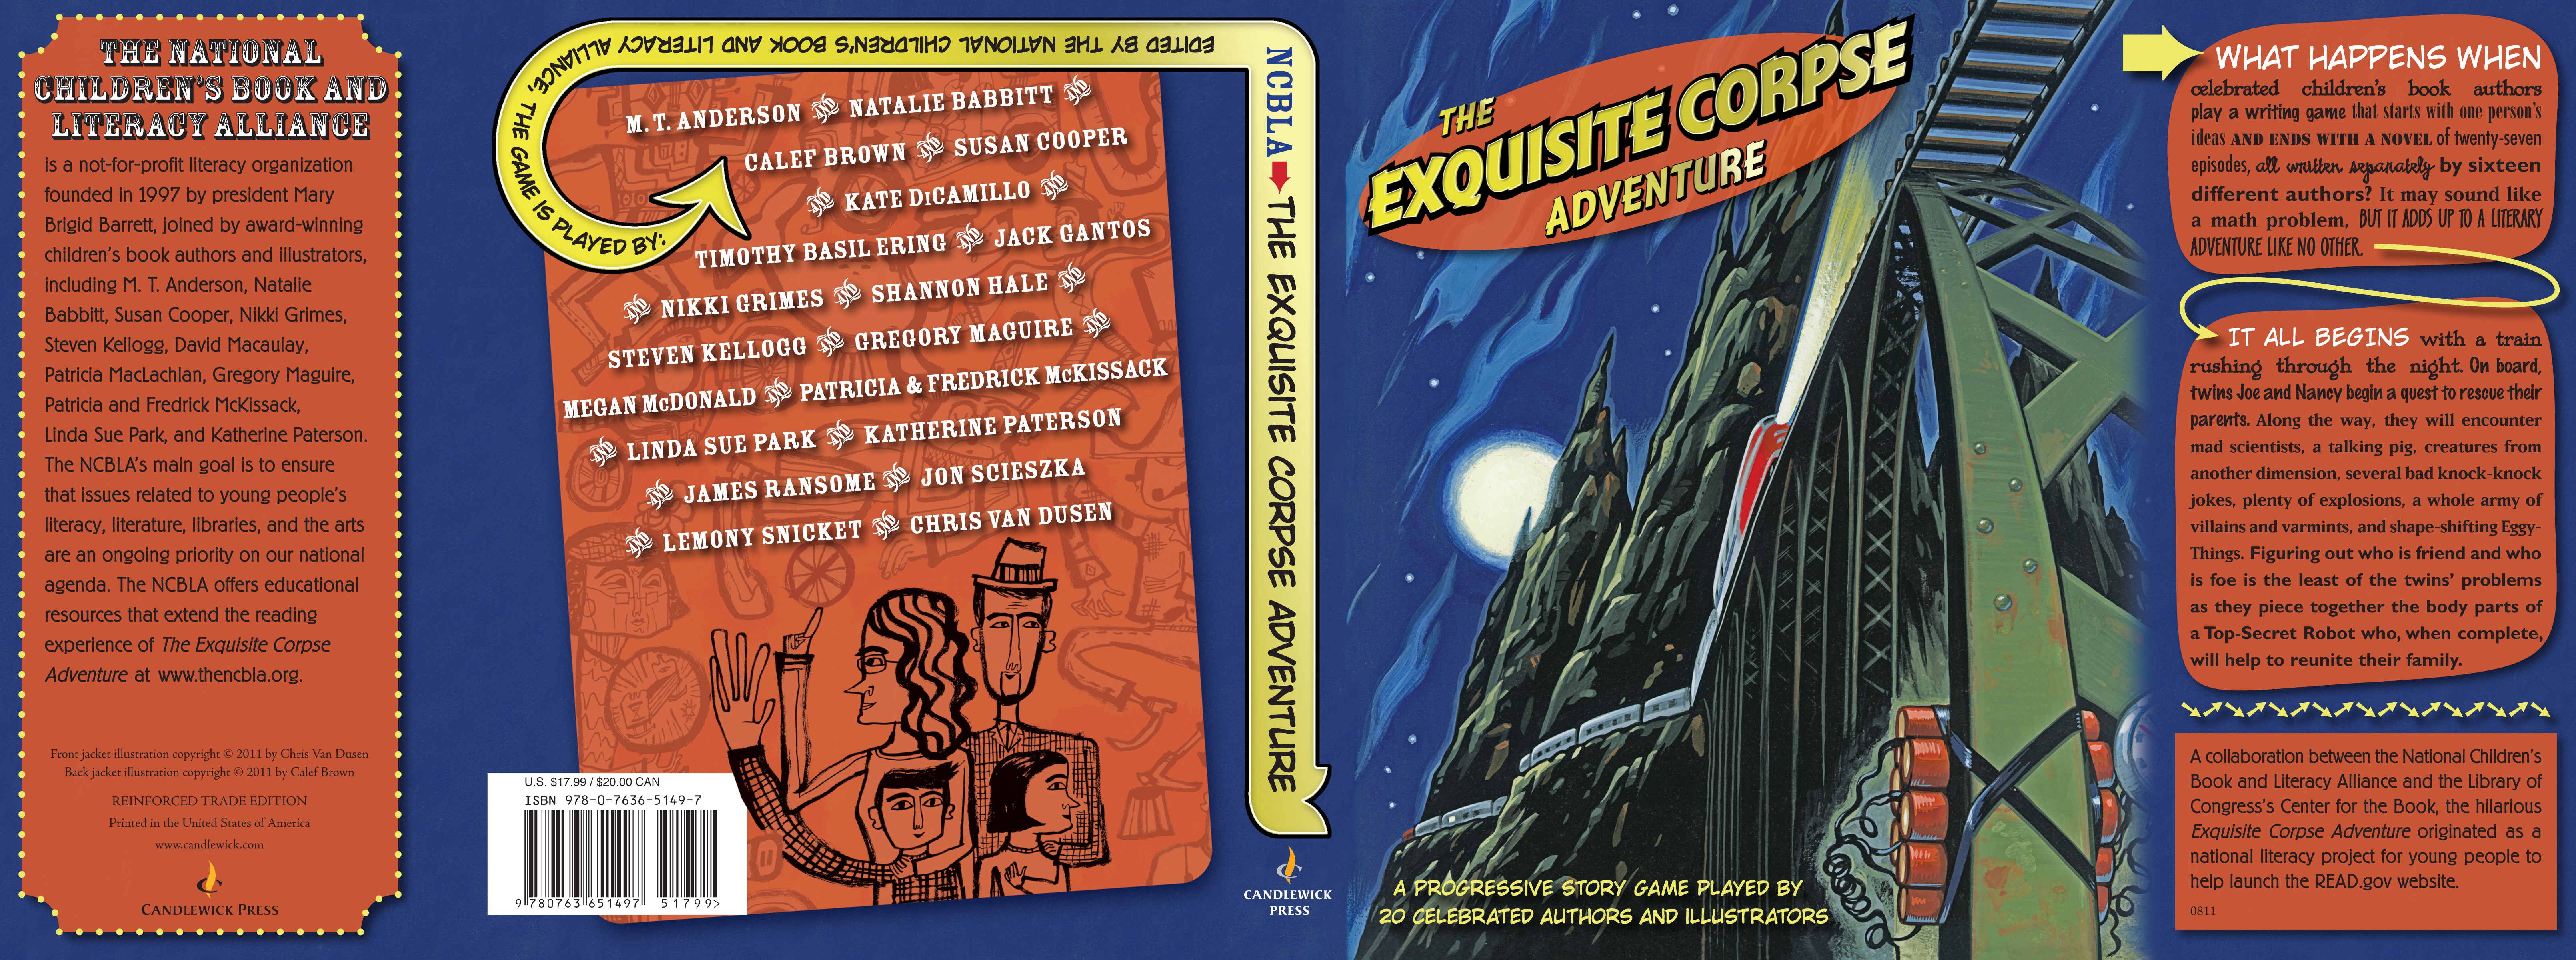 Full jacket for THE EXQUISITE CORPSE ADVENTURE